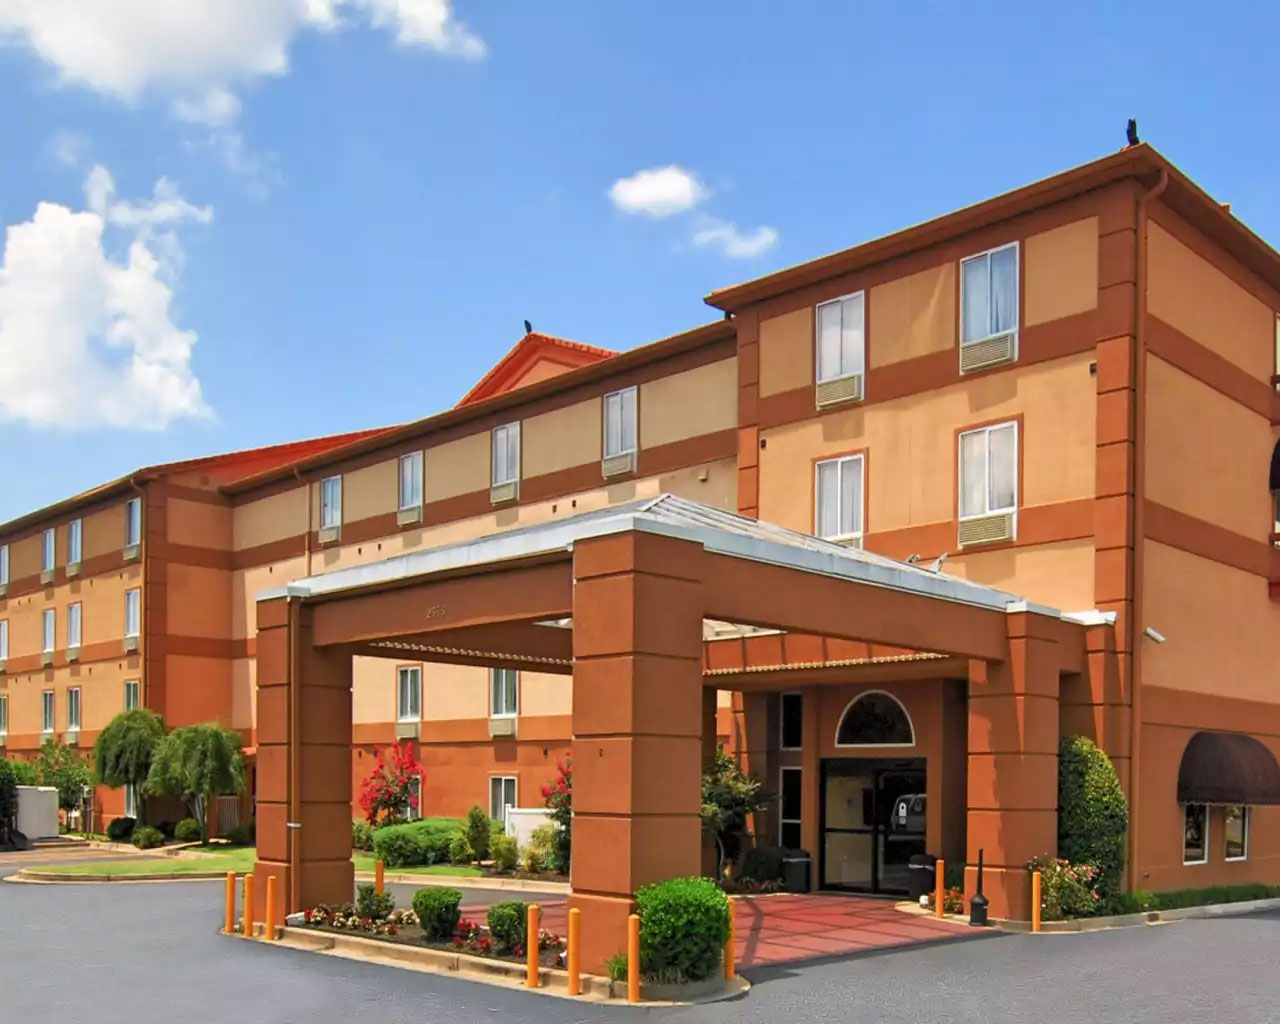 Quality Inn, Tn 38118